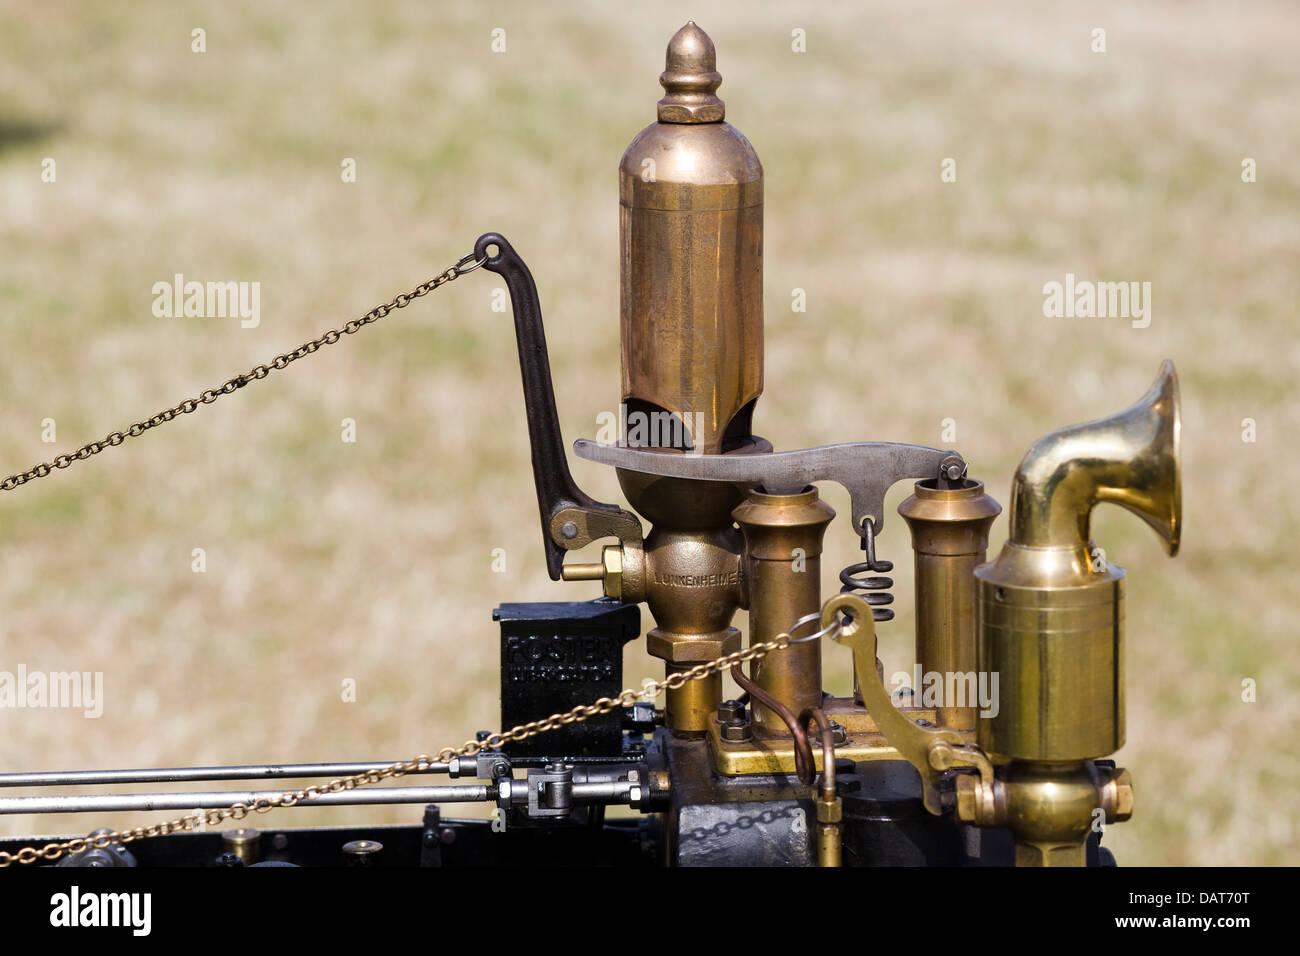 Whistle Horn On Steam Engine Stock Photos & Whistle Horn On